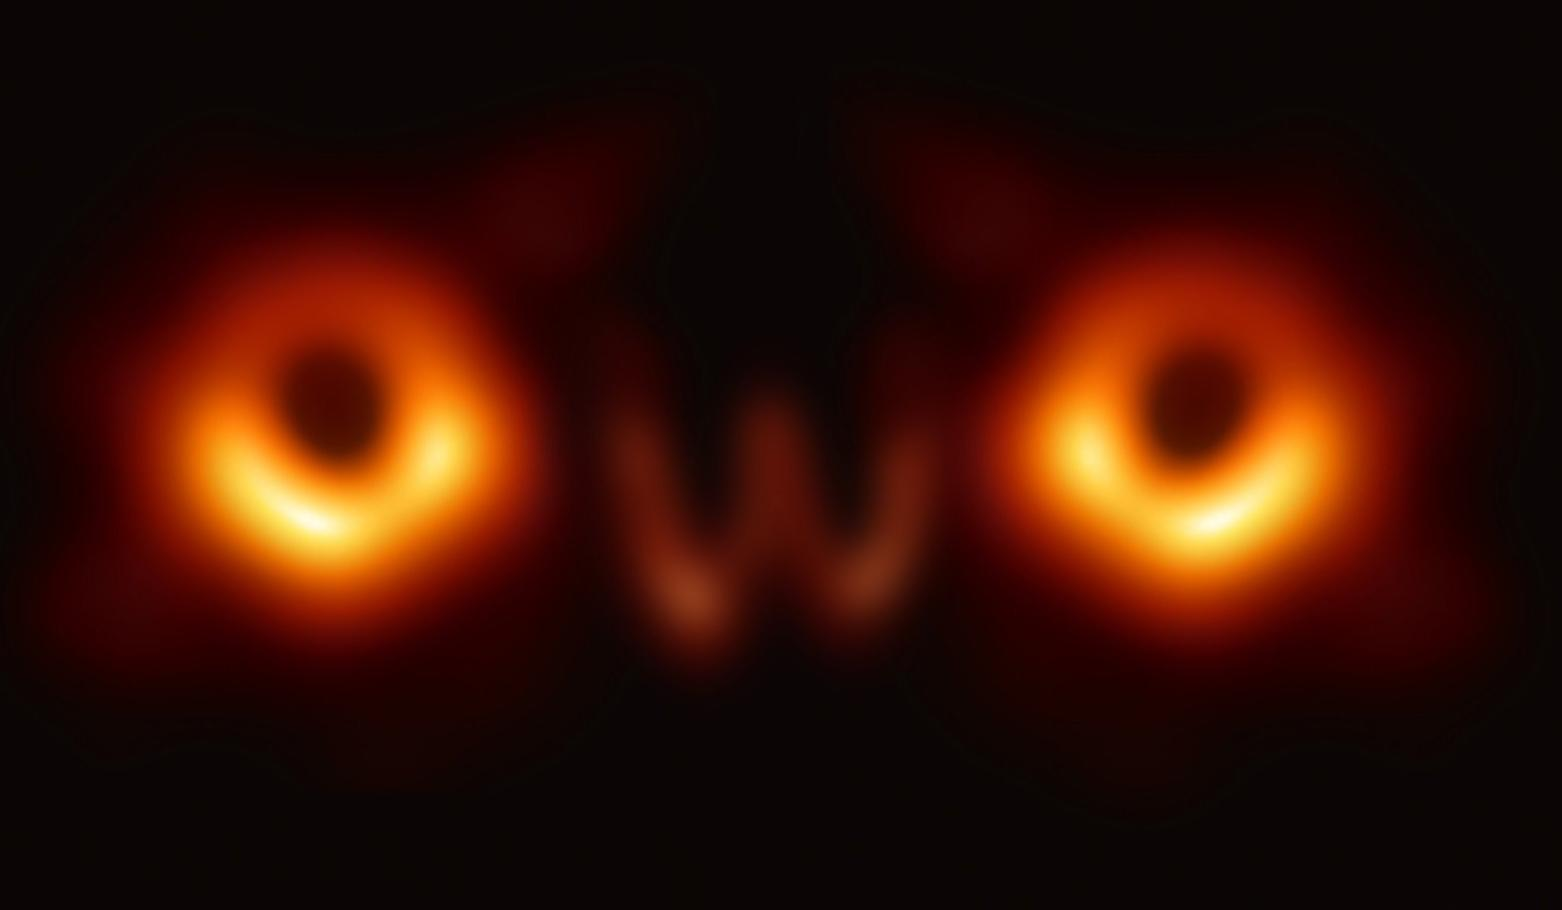 *notices your singularity* 0W0